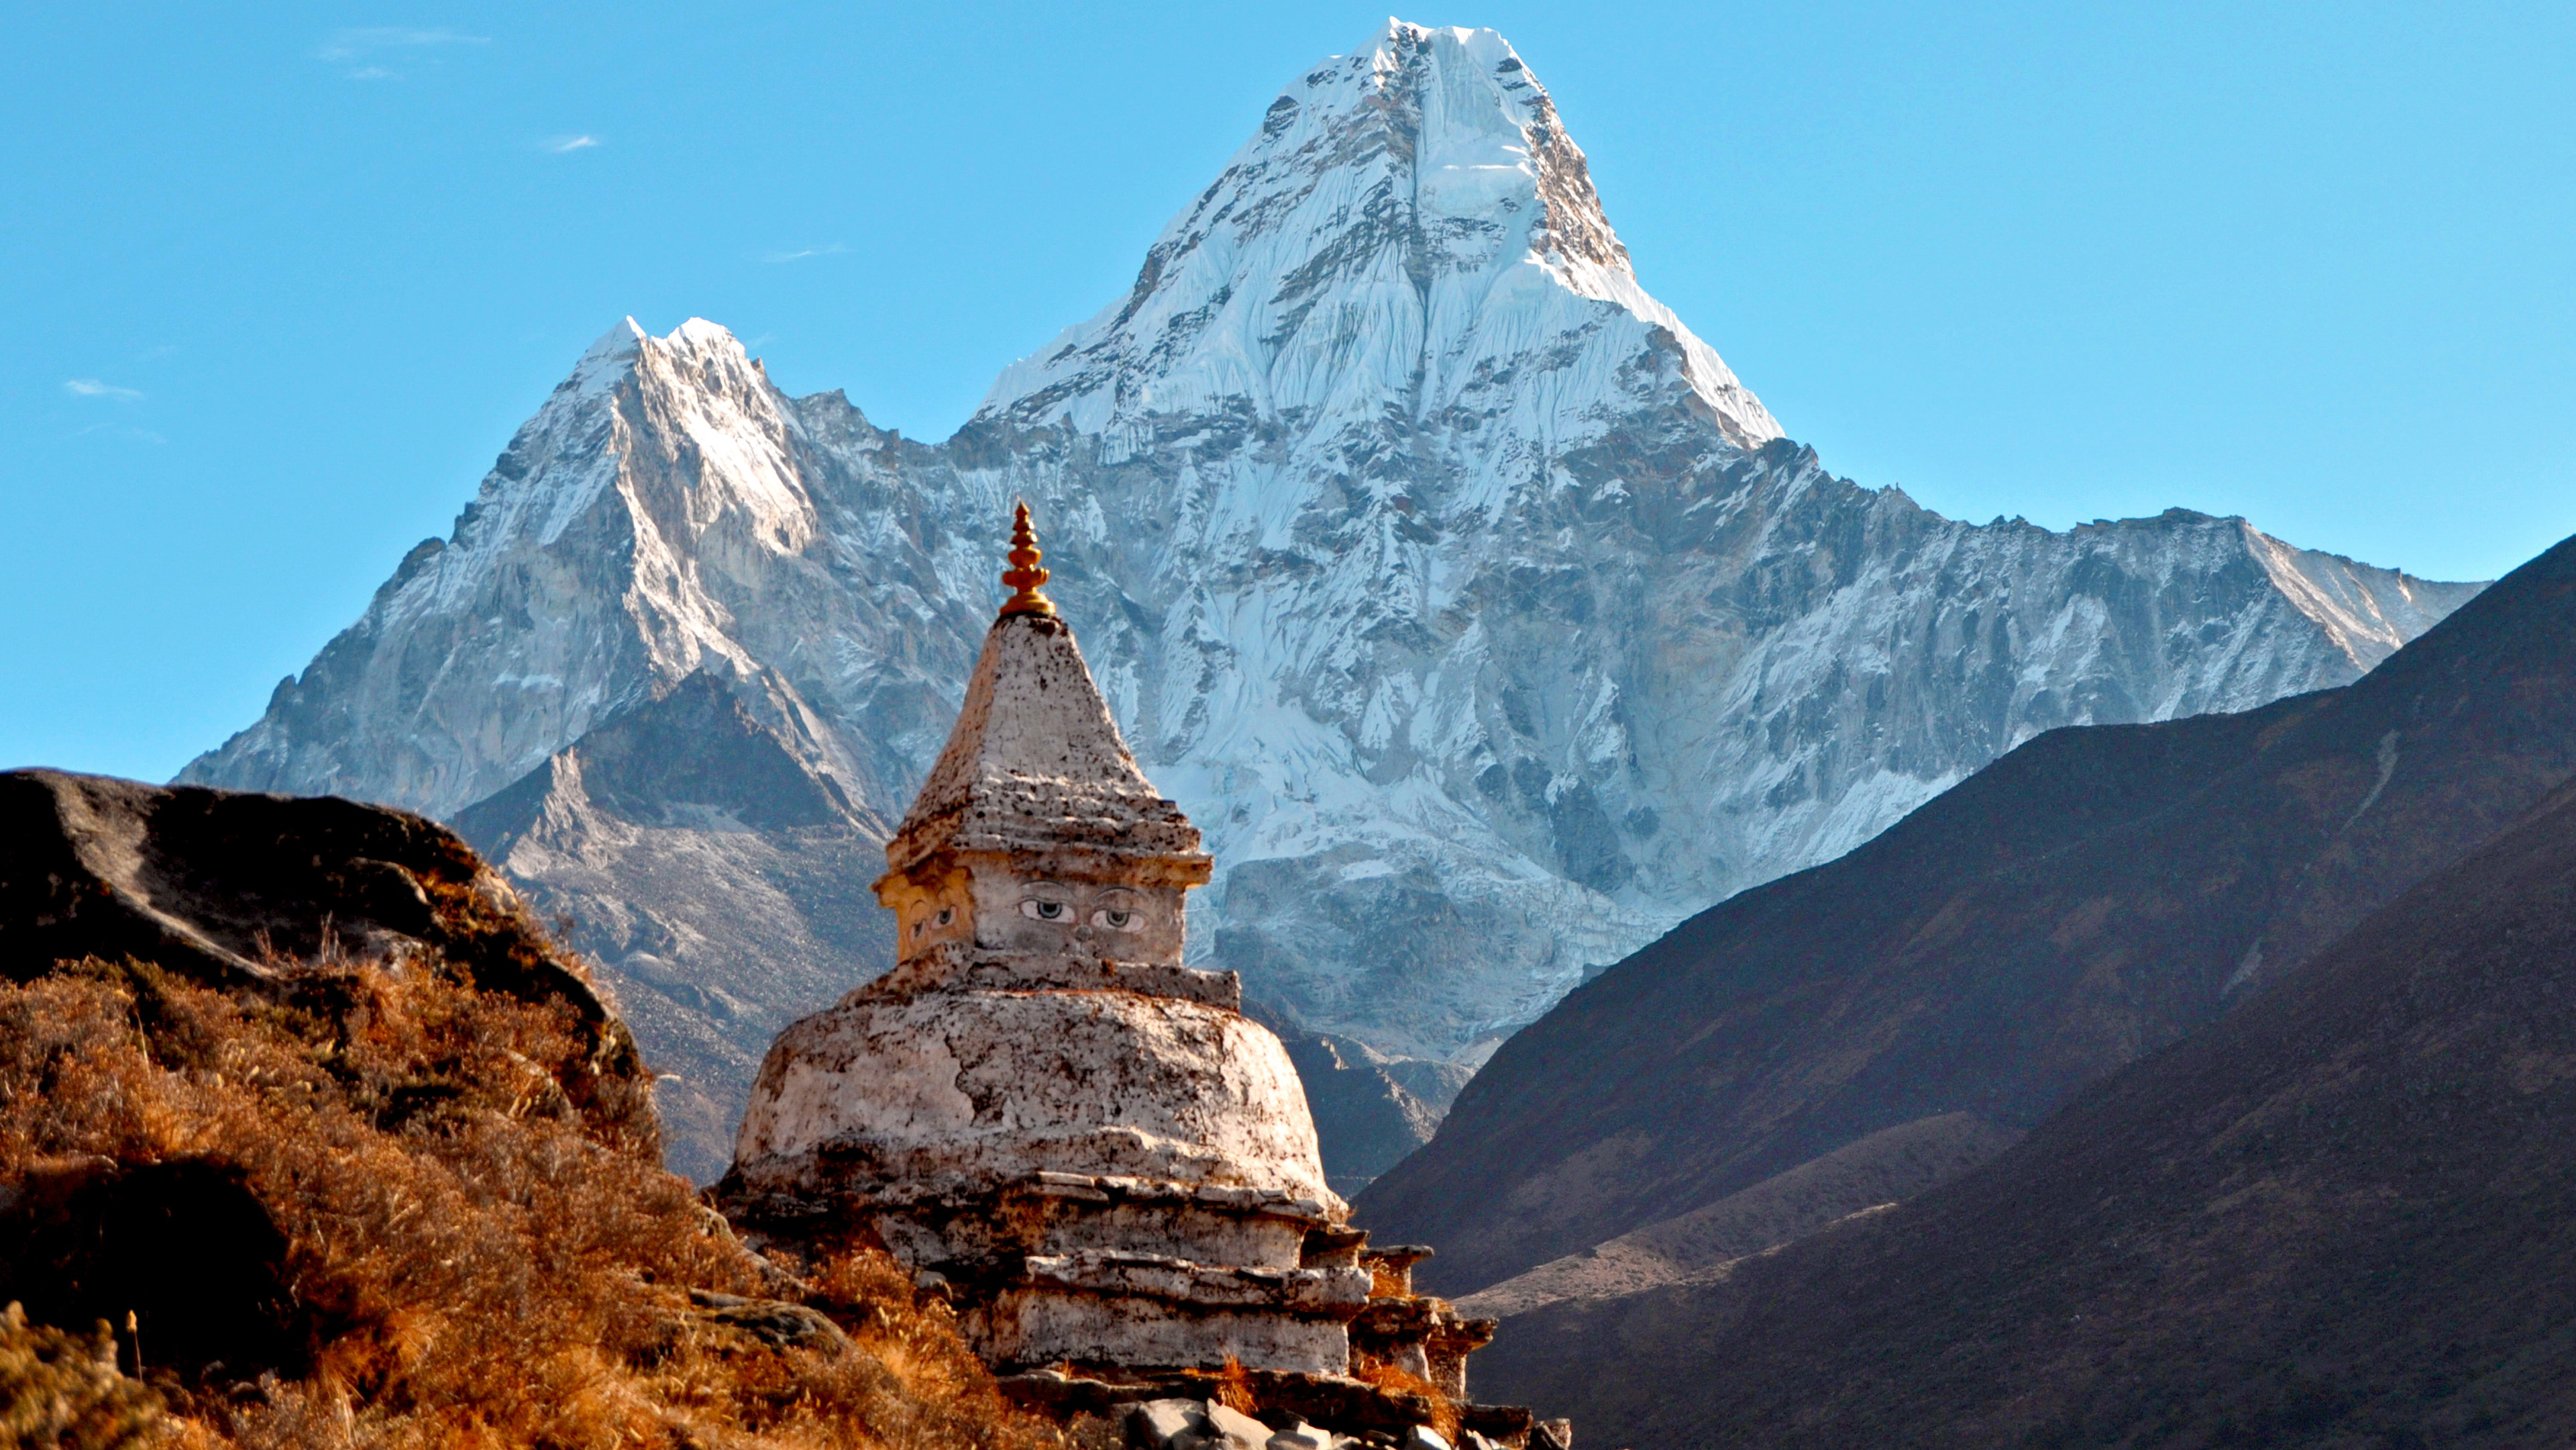 Ama Dablam One Of The Most Beautiful Peak In The World Amazing